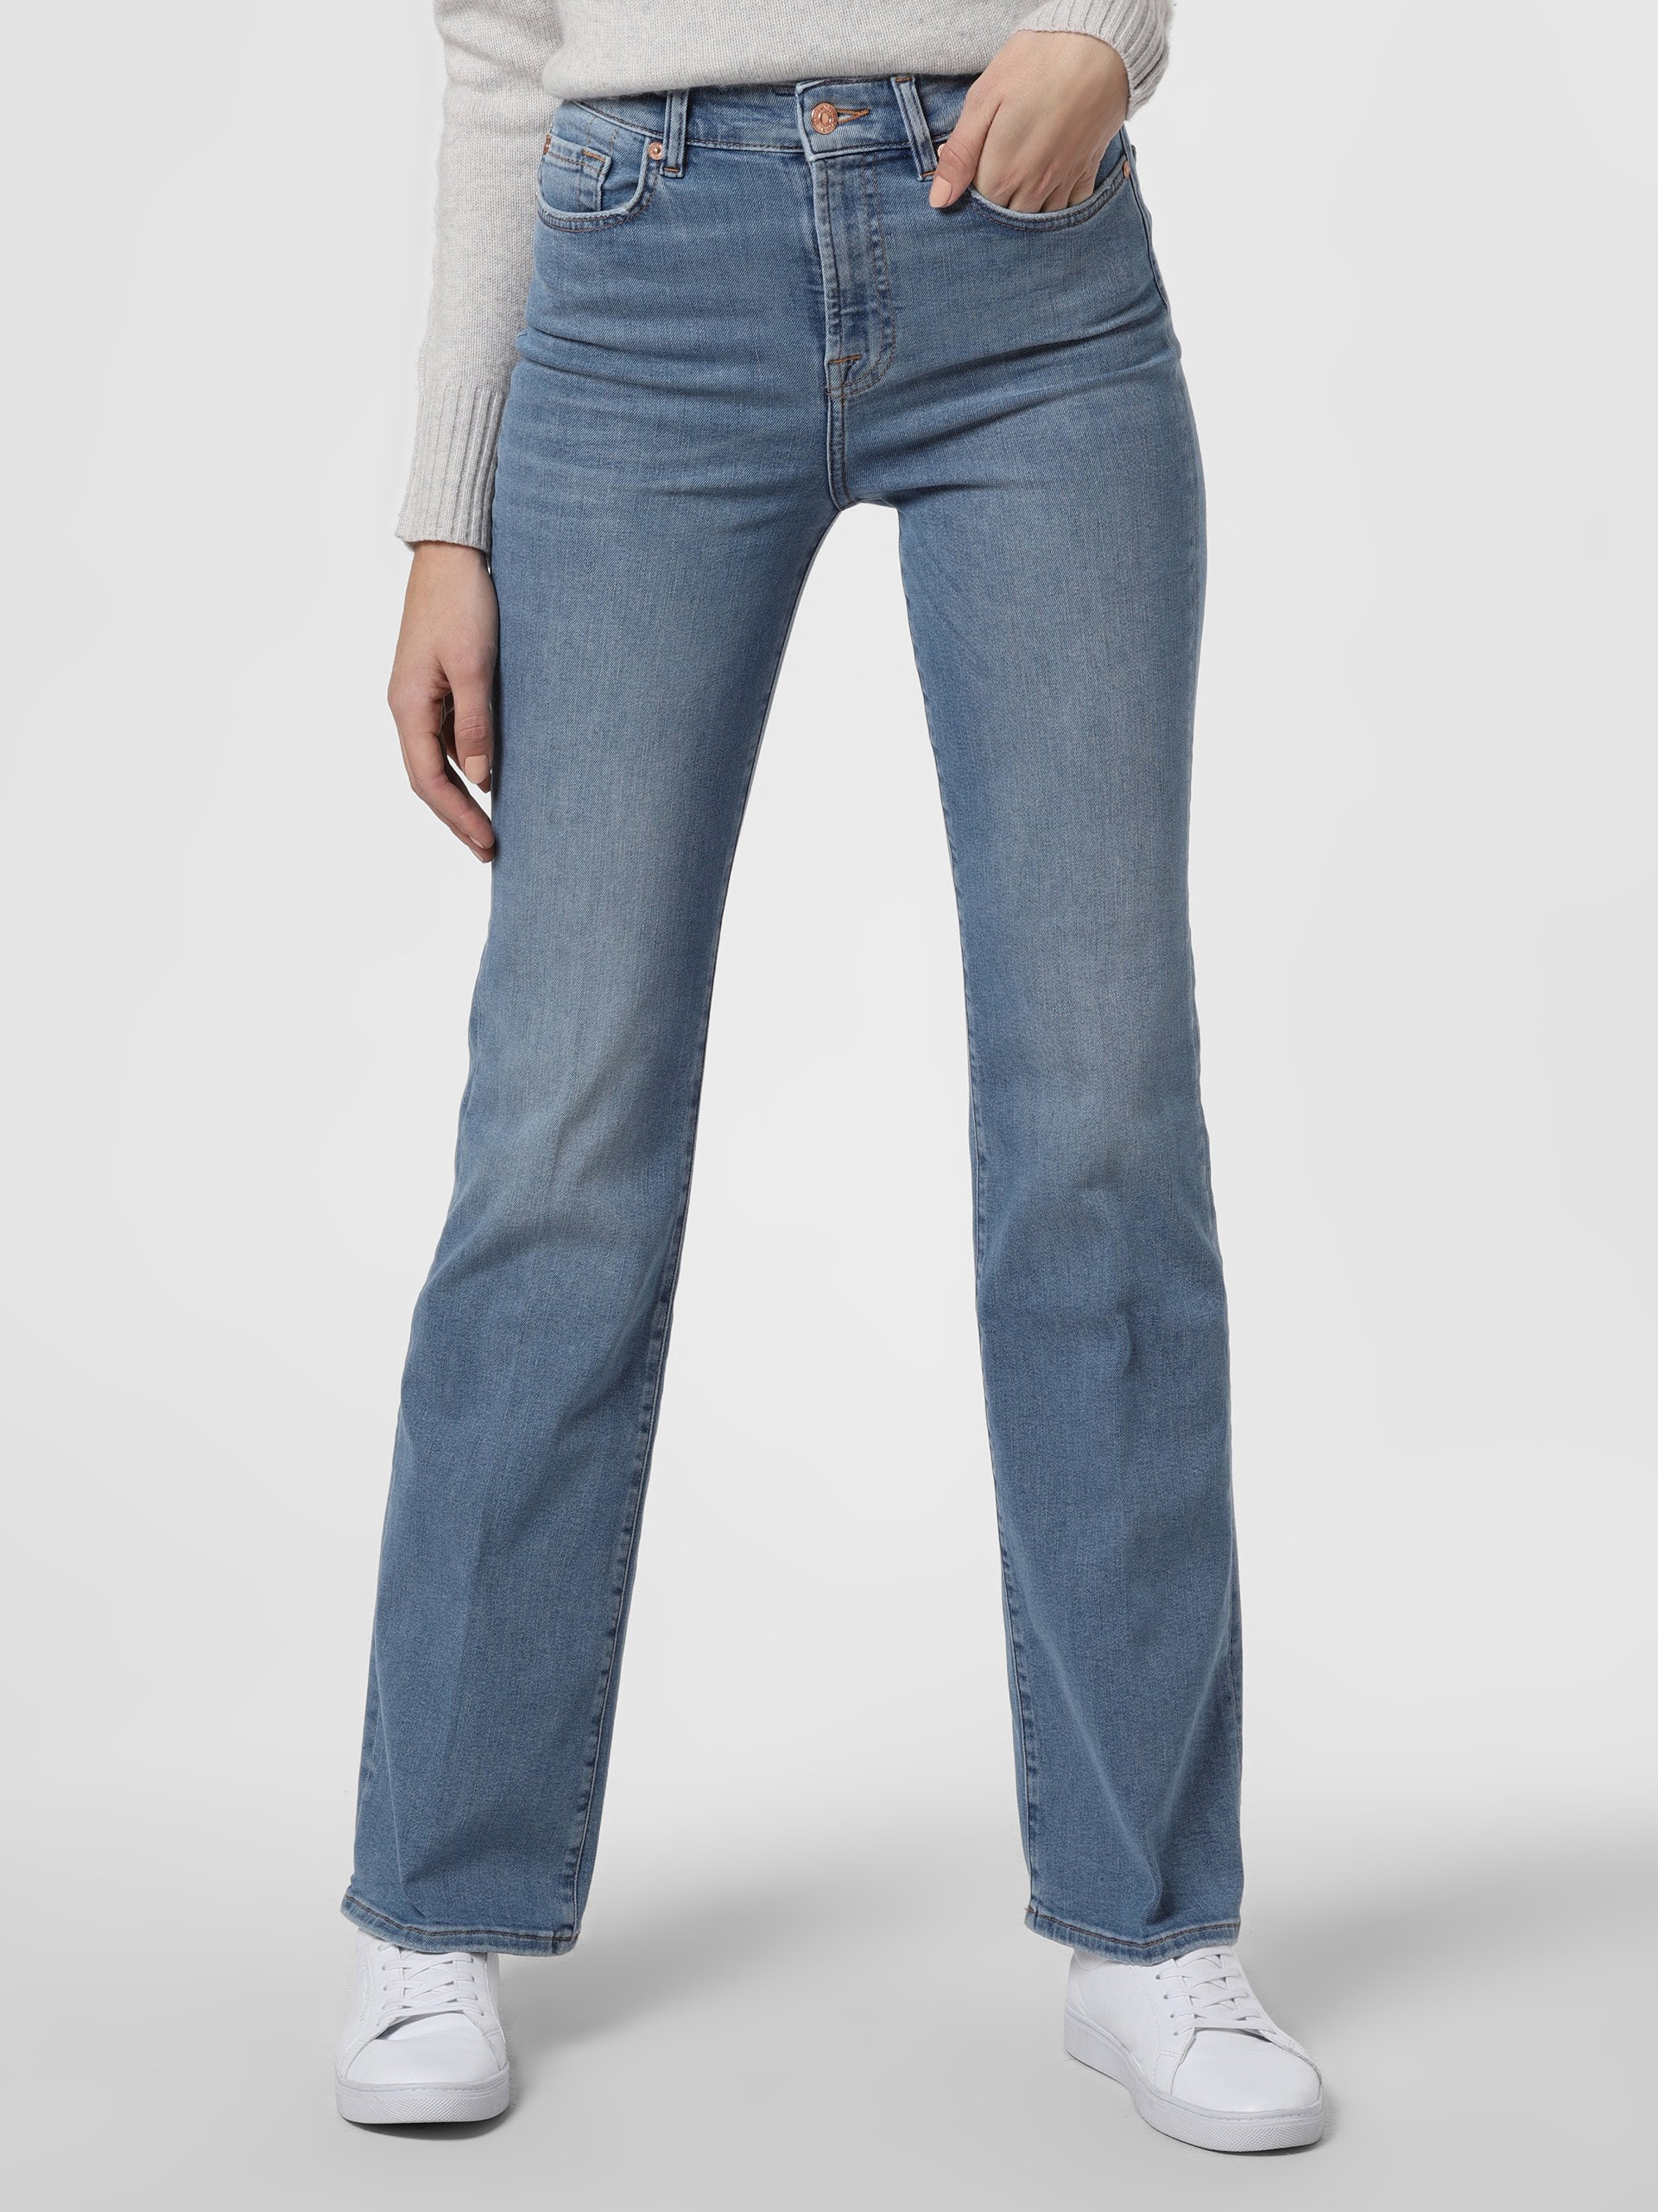 7 For All Mankind Damen Jeans - Lisha